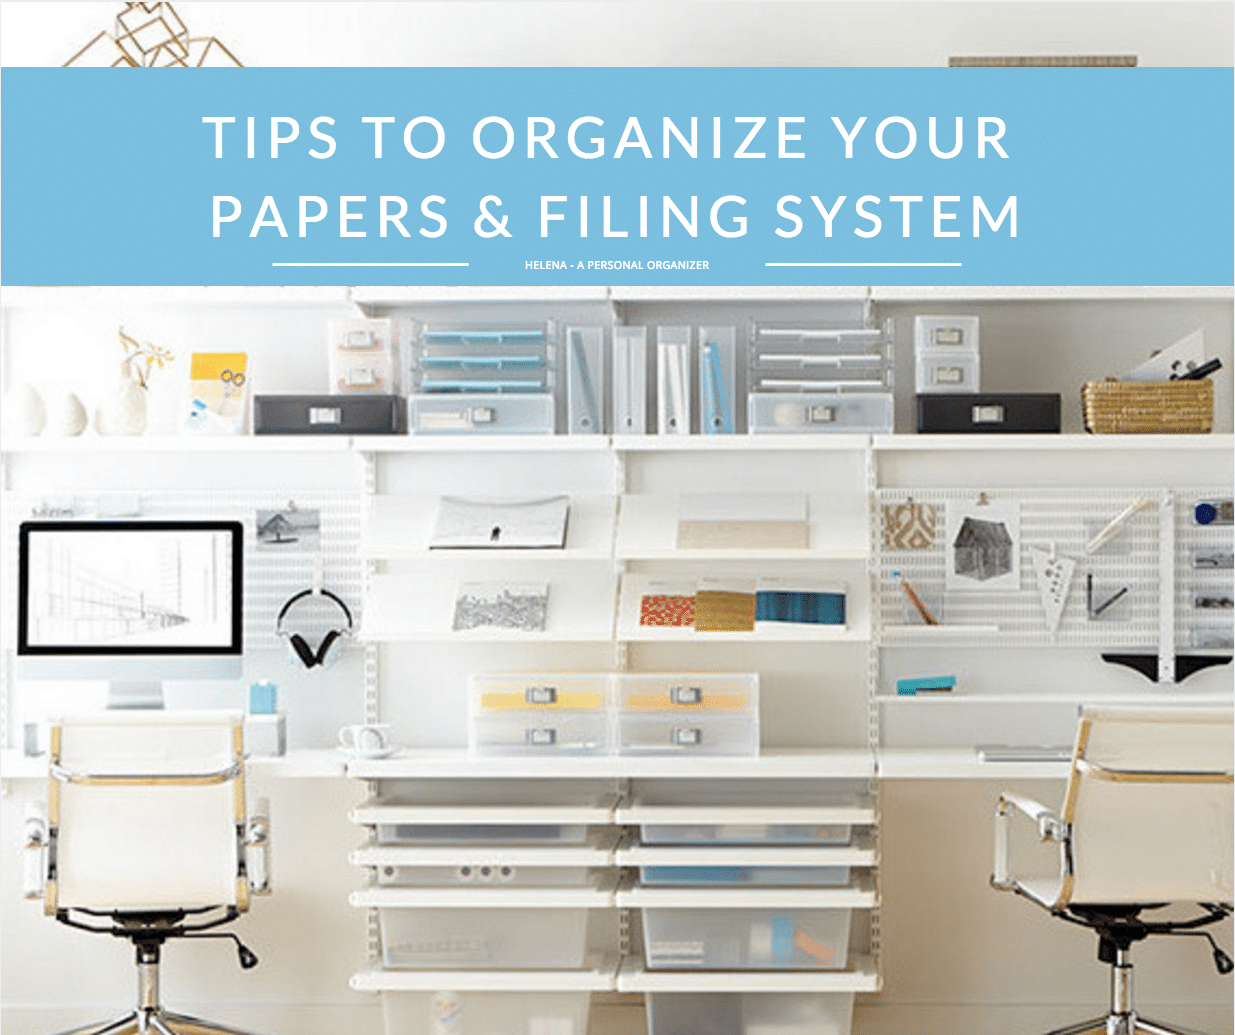 paper file management systems What the experts say: jeff pickard, ceo of lucion technologies, a provider of document management solutions, said these systems help businesses organize all of their paper and digital files in one central location, where everyone in the office has access.